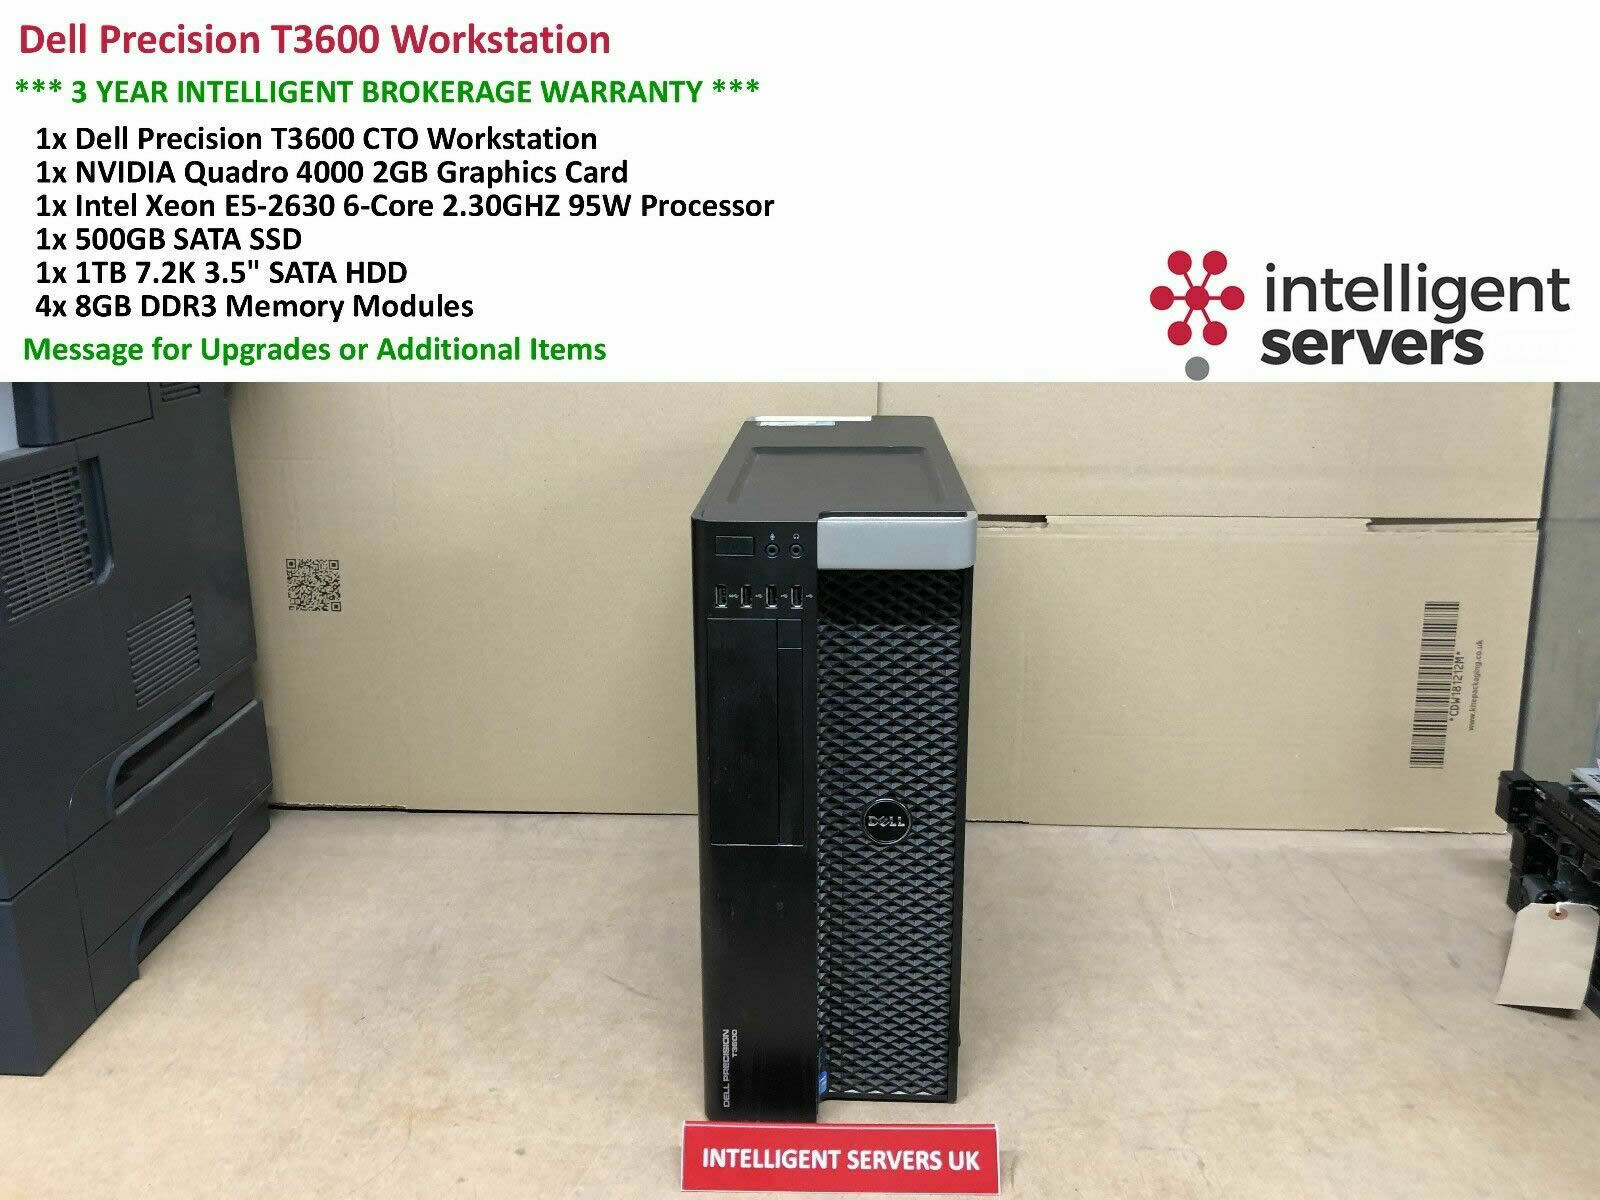 Details about Dell T3600 Workstation, E5-2630 2 3GHz, 32GB, 500GB SSD, 1TB  HDD, Quadro 4000